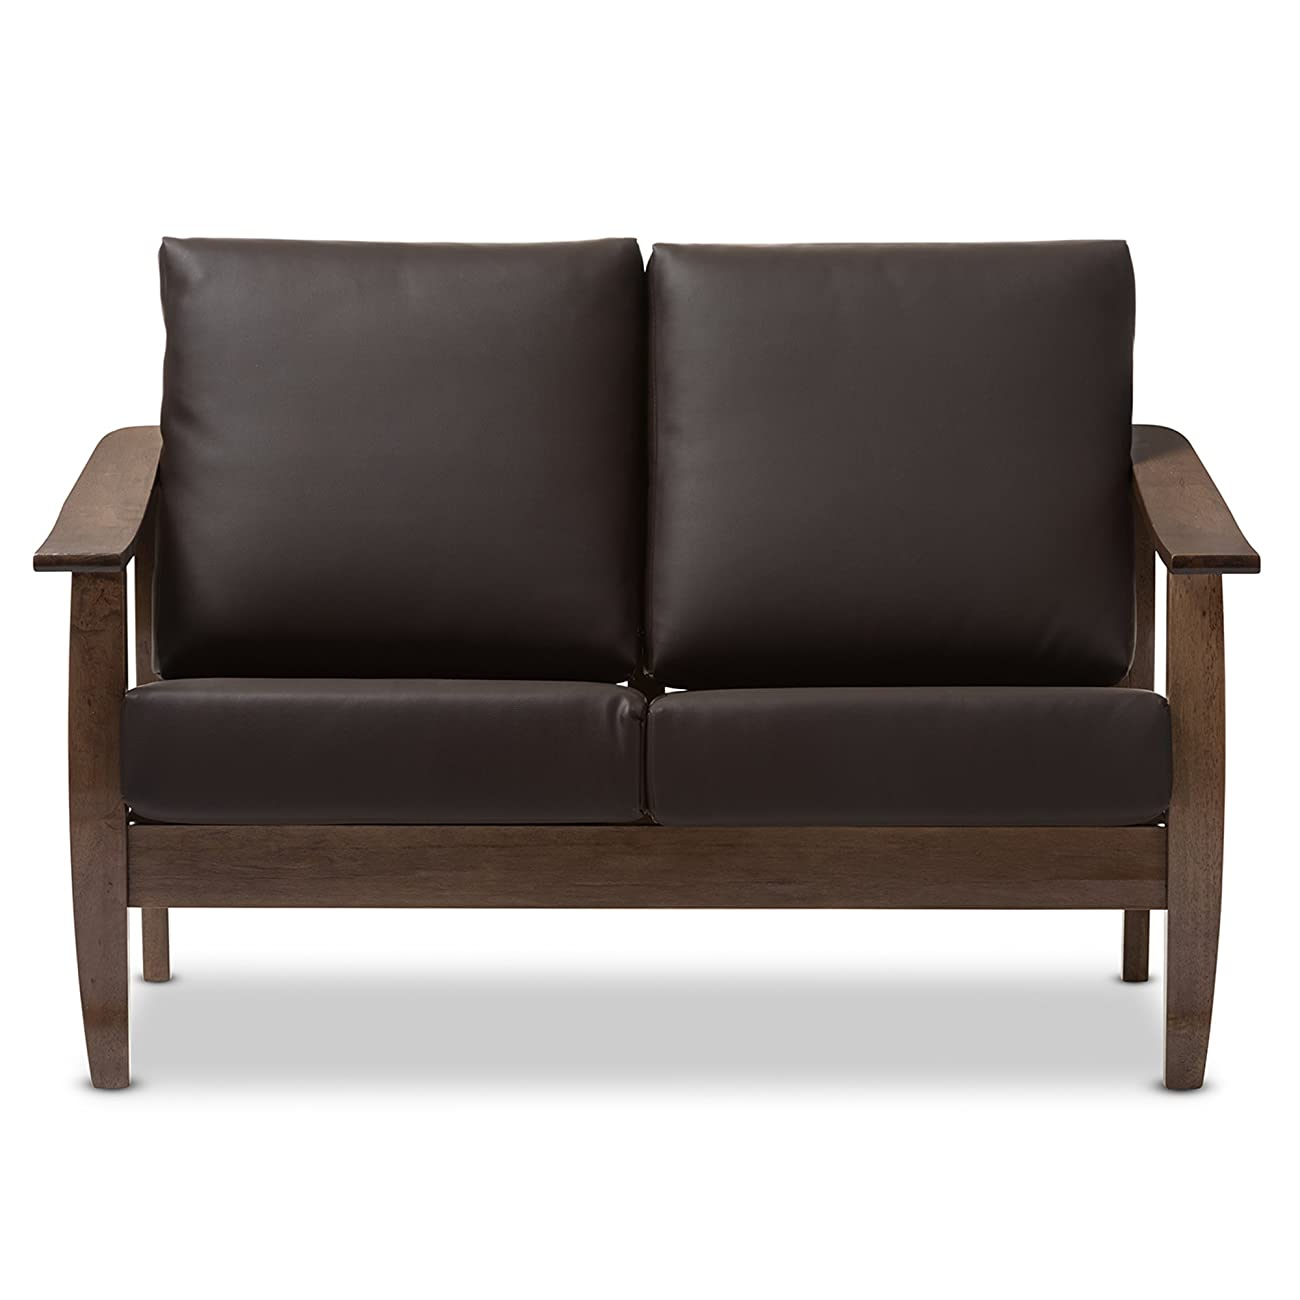 Baxton Studio Philbert Mid Century Modern Walnut Wood and Dark Brown Faux Leather 2 Seater Loveseat Sofa 1